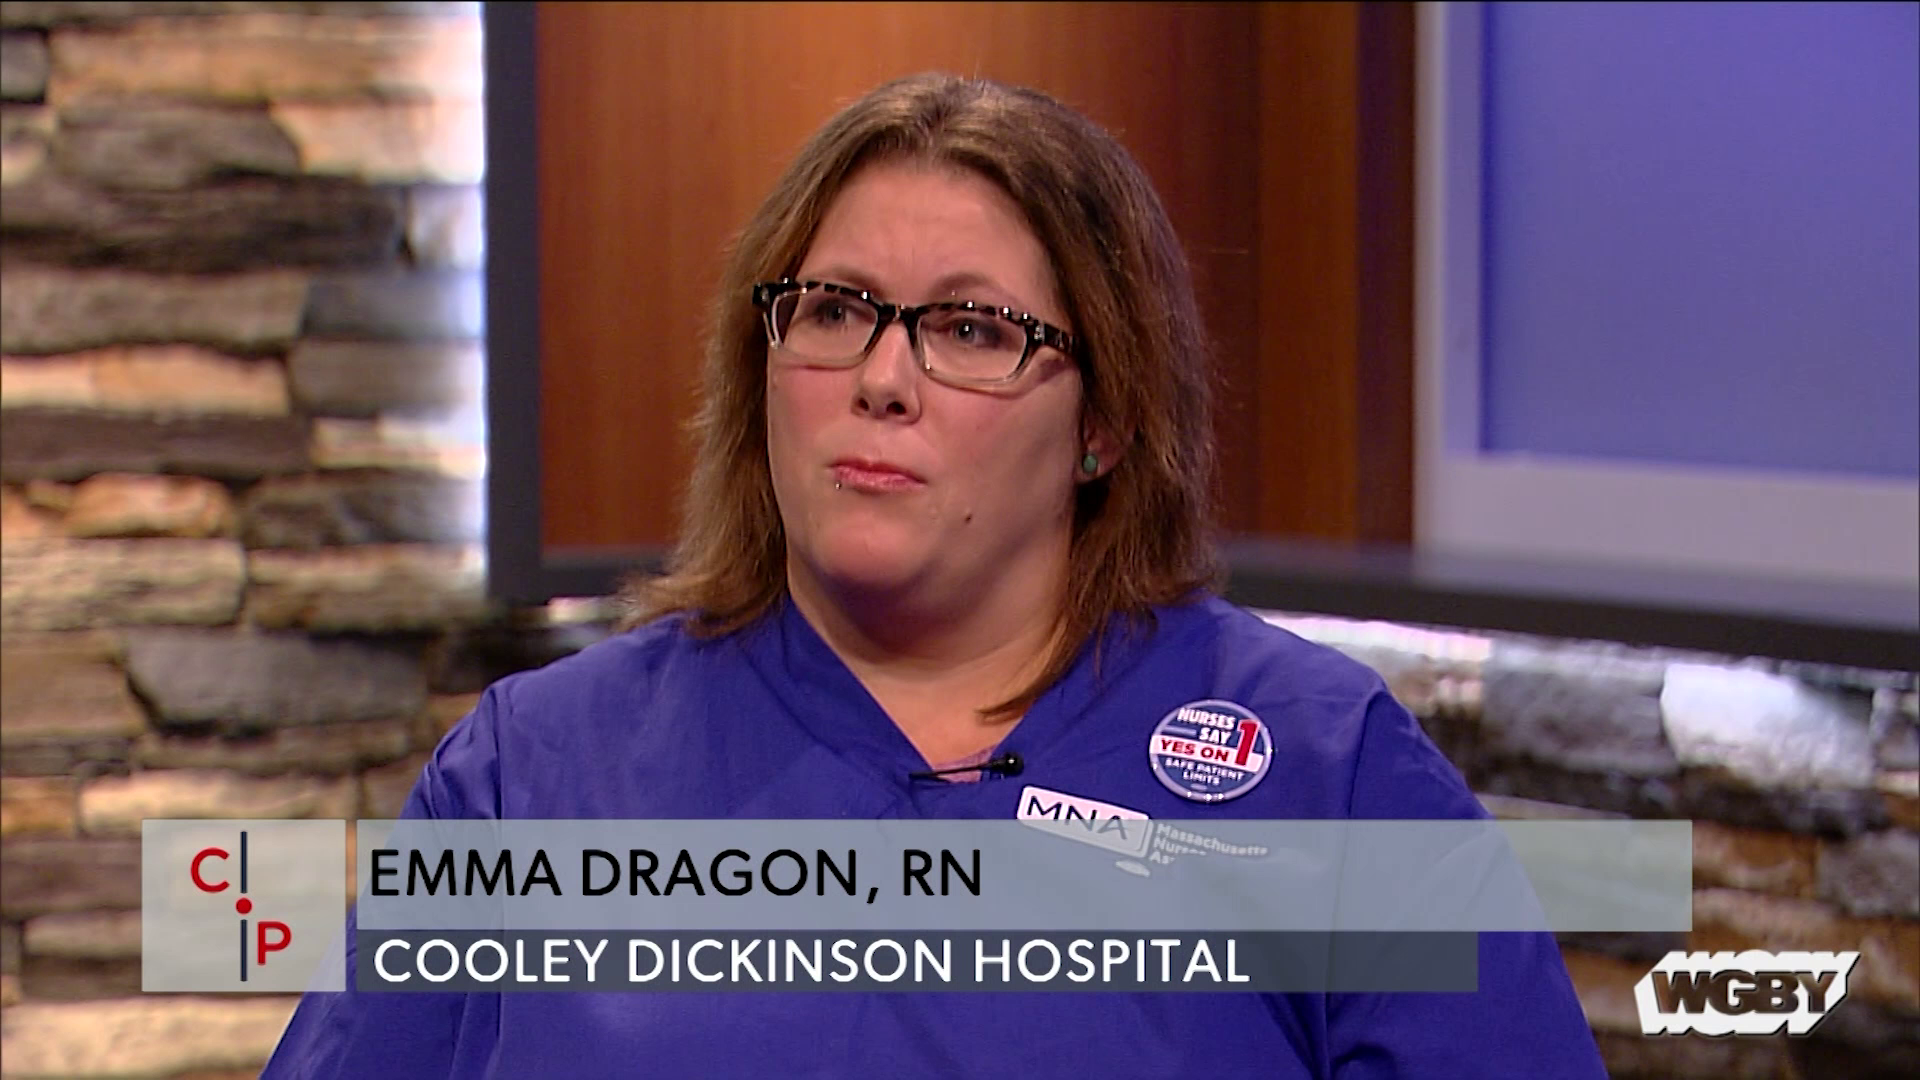 Cooley Dickinson Hospital Registered Nurse Emma Dragon explains why she supports MA Ballot Question 1, which mandates specific nurse-patient ratios.